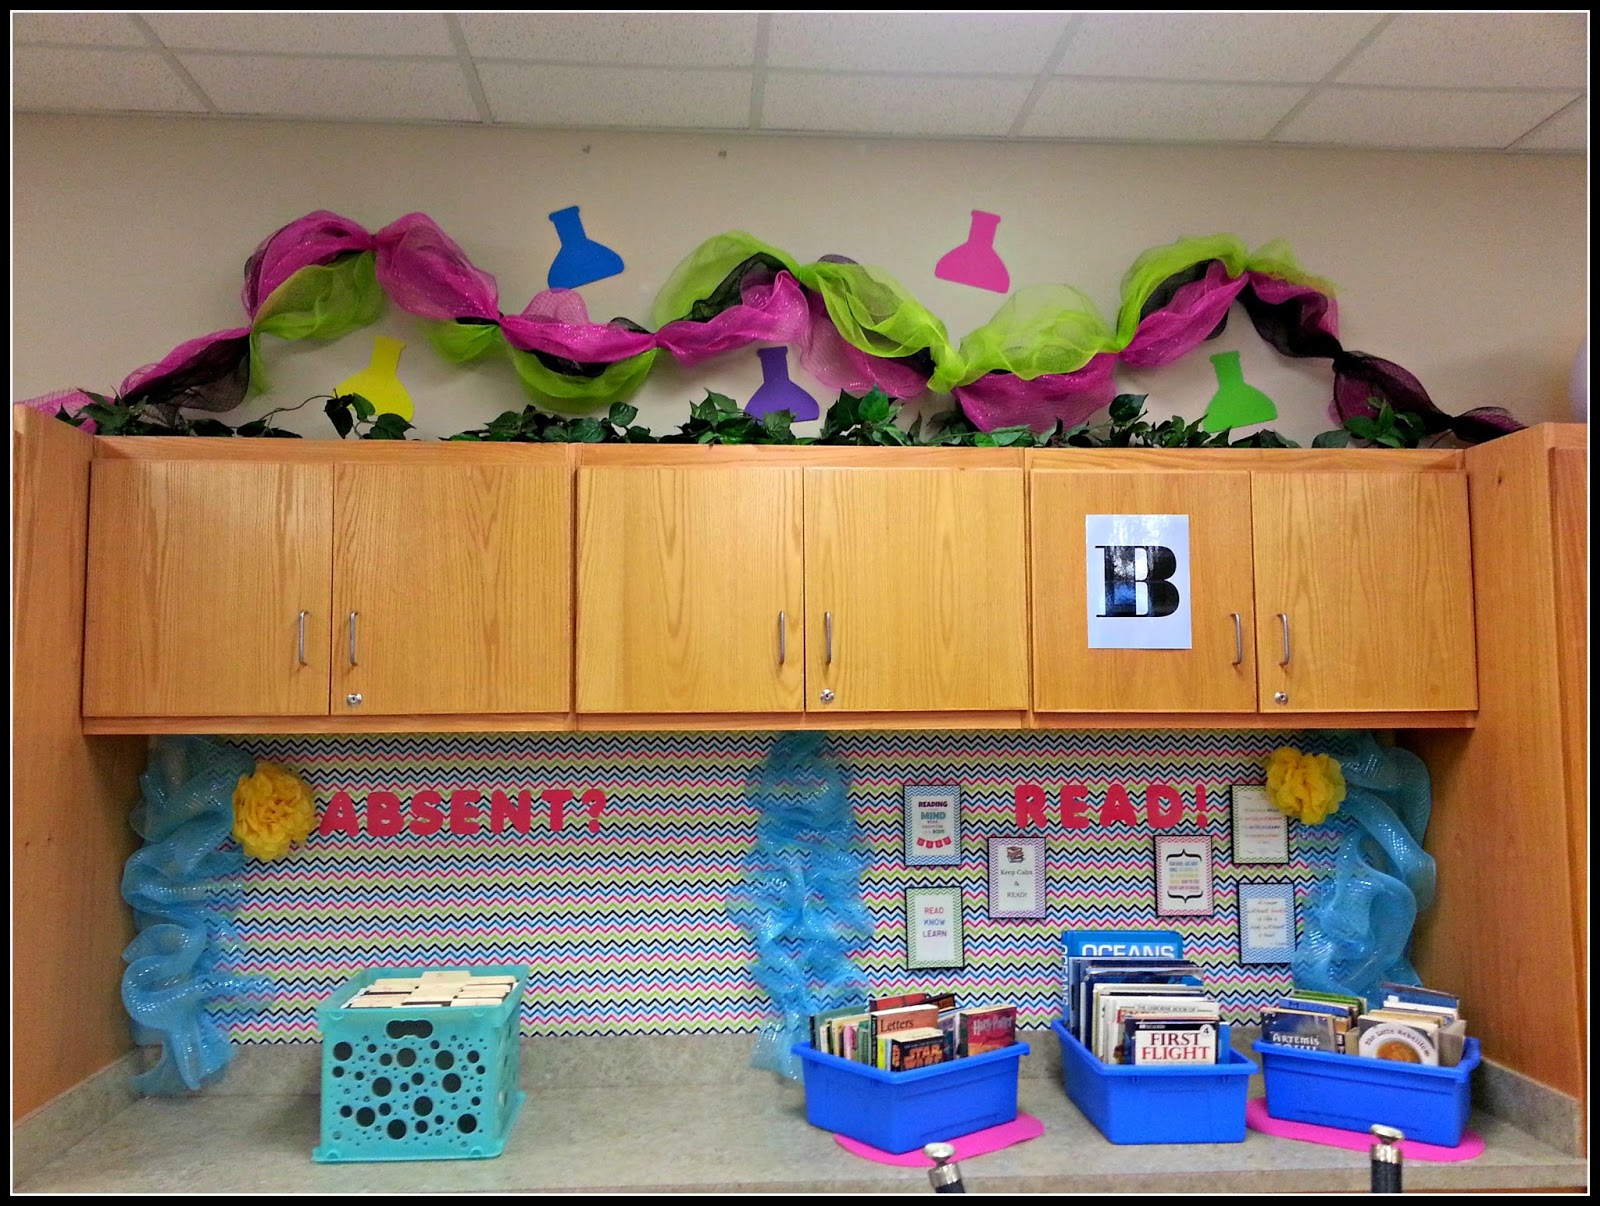 Middle School Science Classroom Decorations ~ The gallery for gt middle school science classroom themes